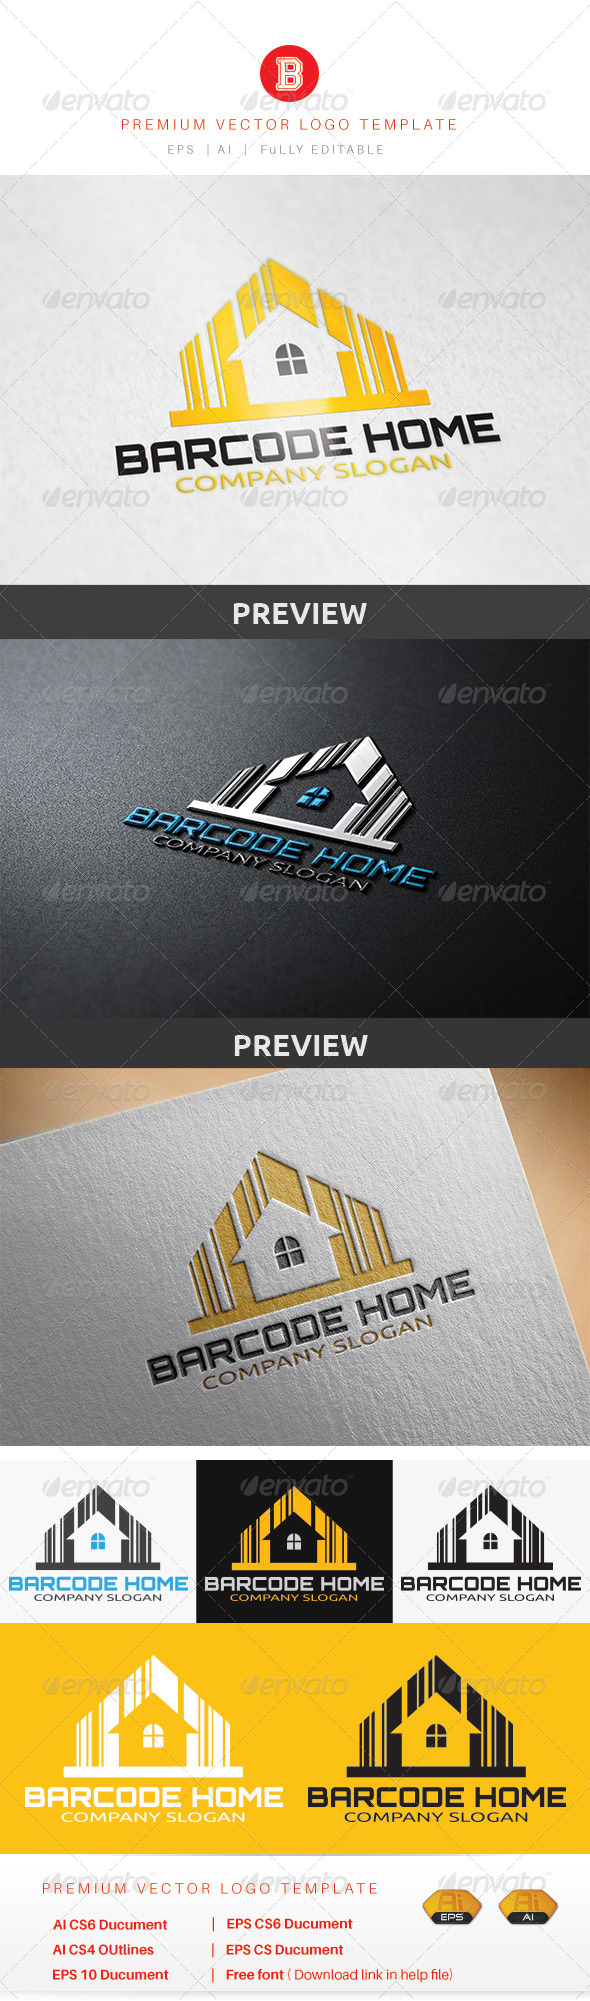 GraphicRiver Barcode Home 8604045